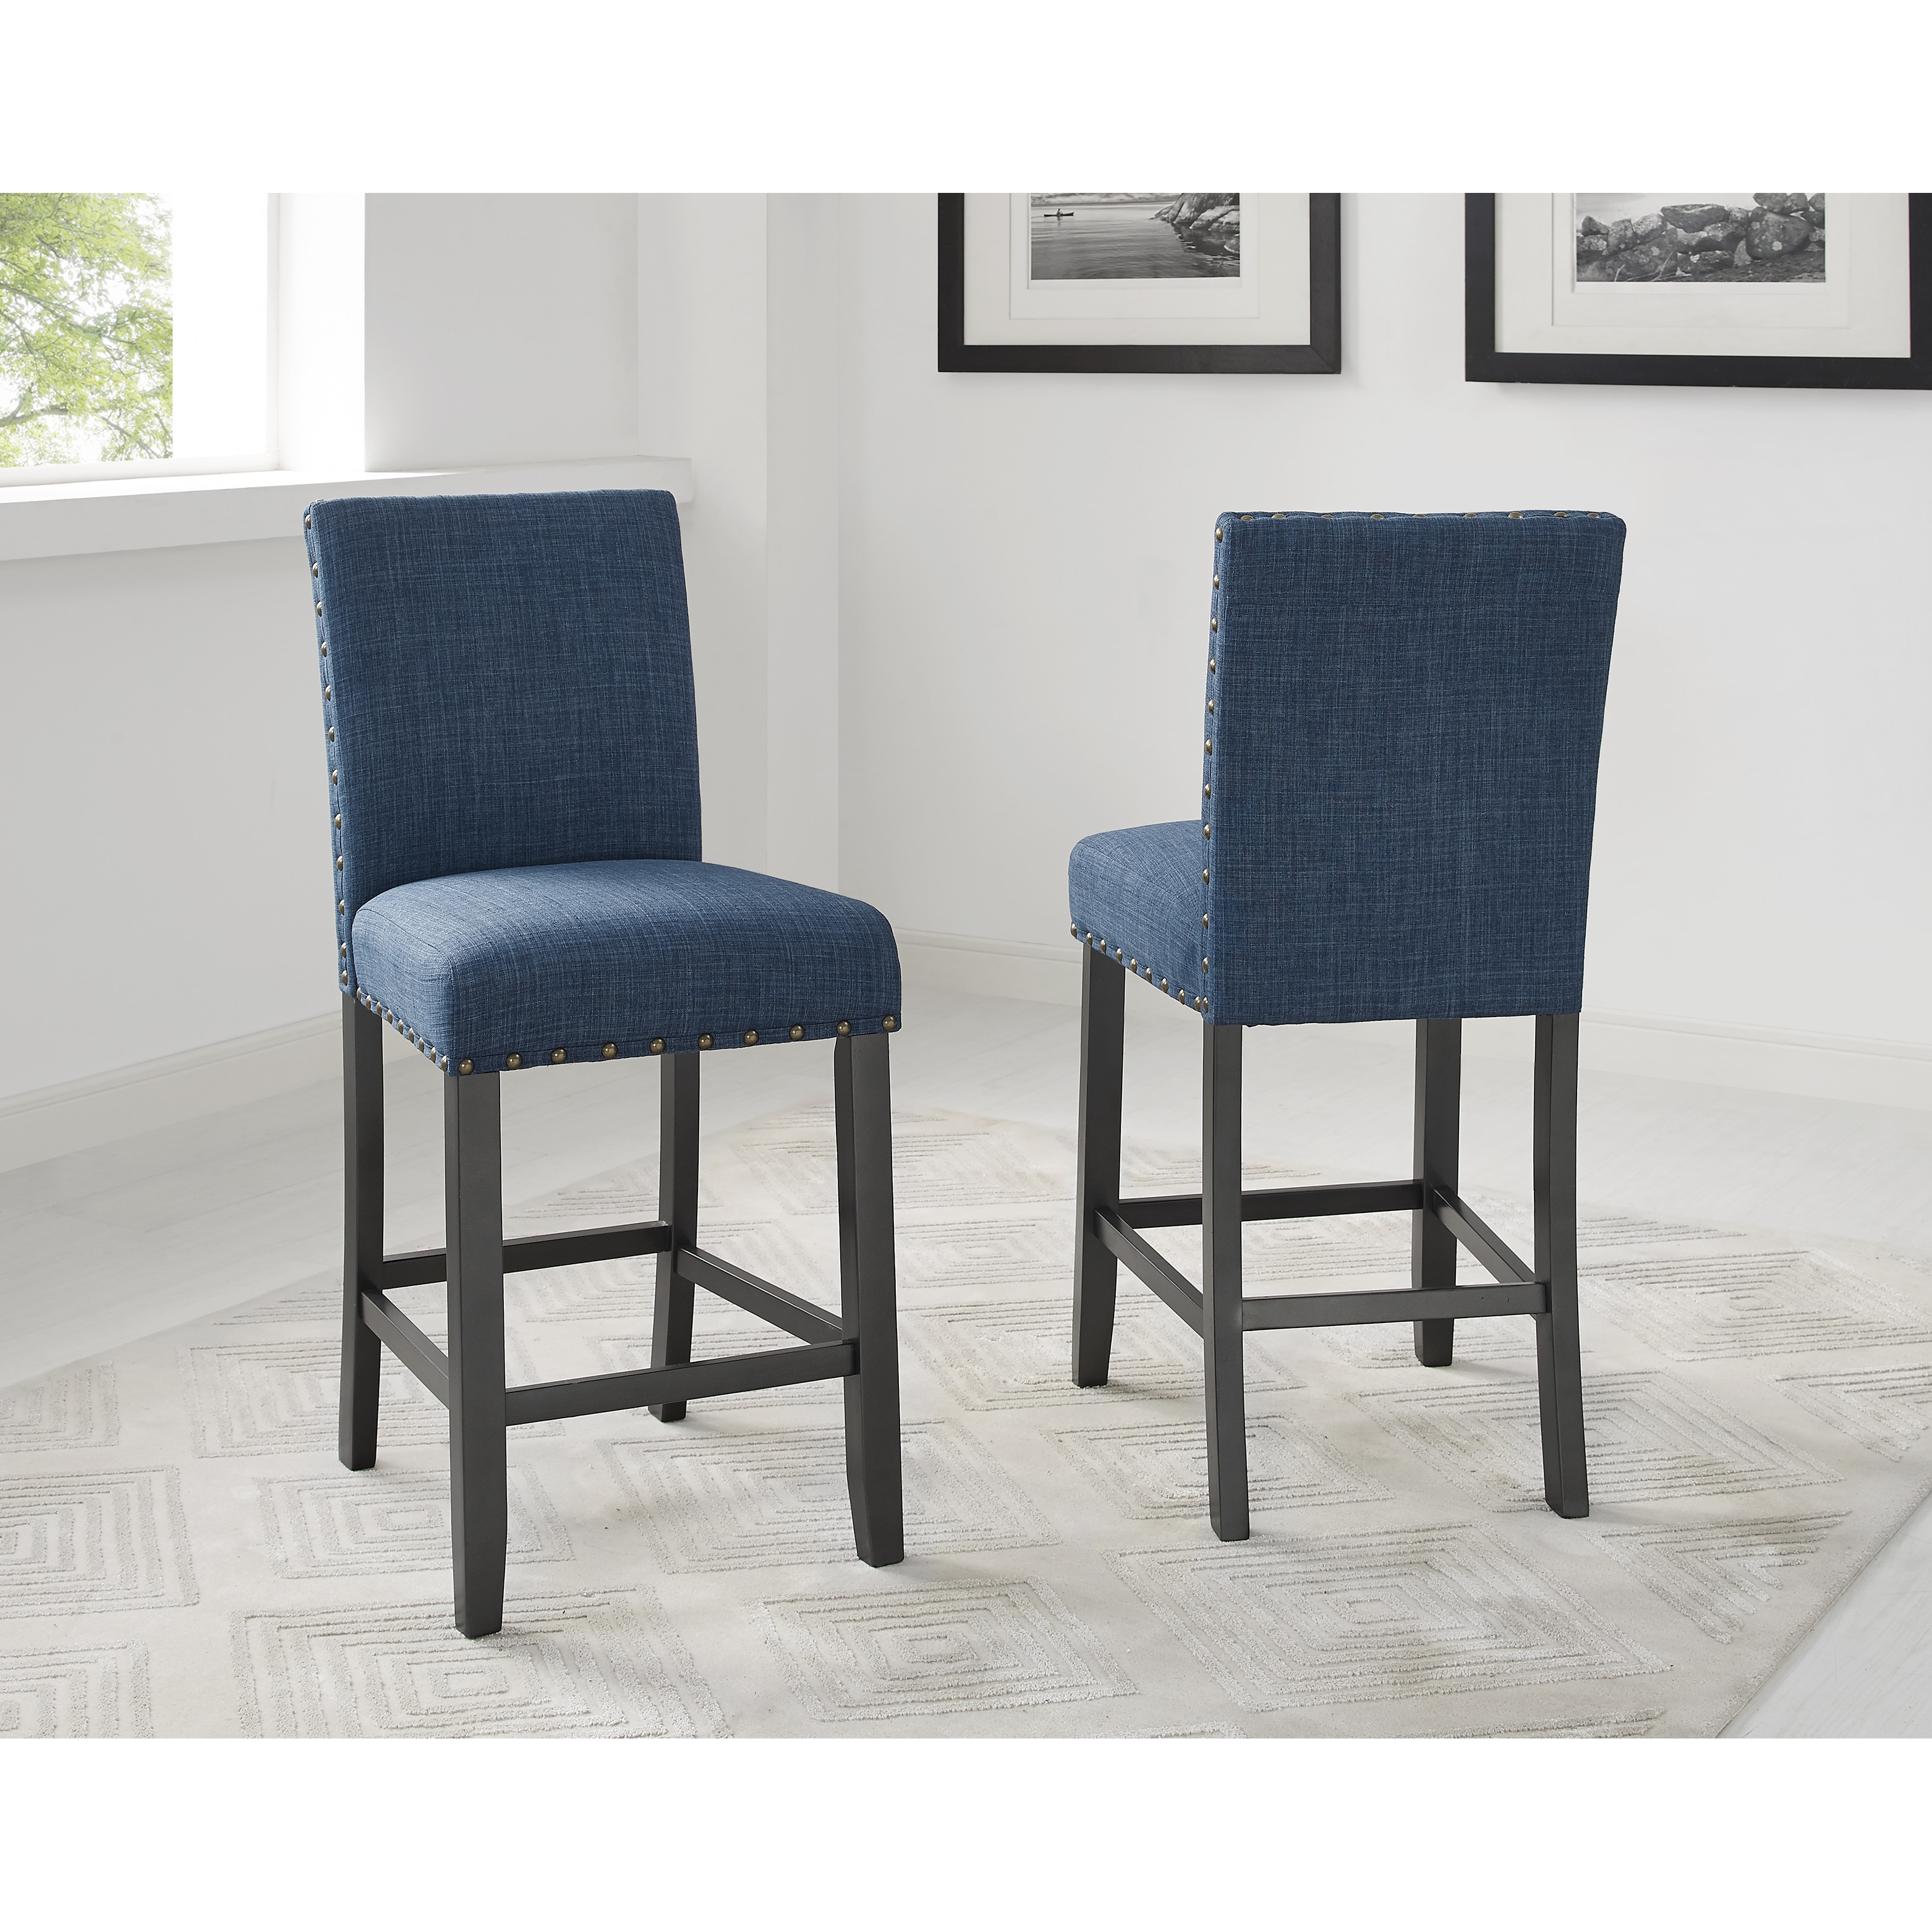 Shop Biony 26 Inch Nailhead Trim Fabric Counter Height Blue Stools